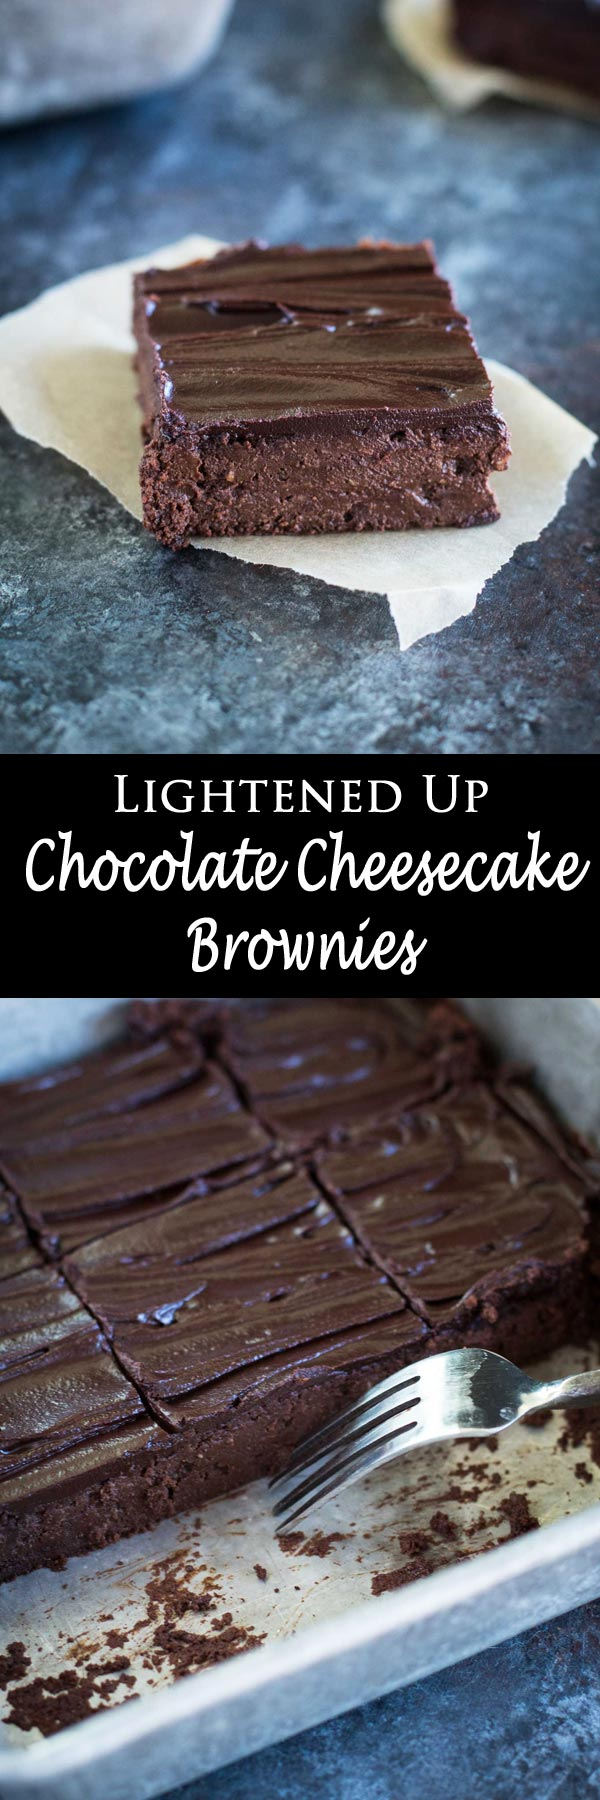 These dark chocolate cheesecake brownies are lightly sweetened with maple syrup, decadent, and rich. Refined sugar-free, gluten-free, butter- and oil-free!